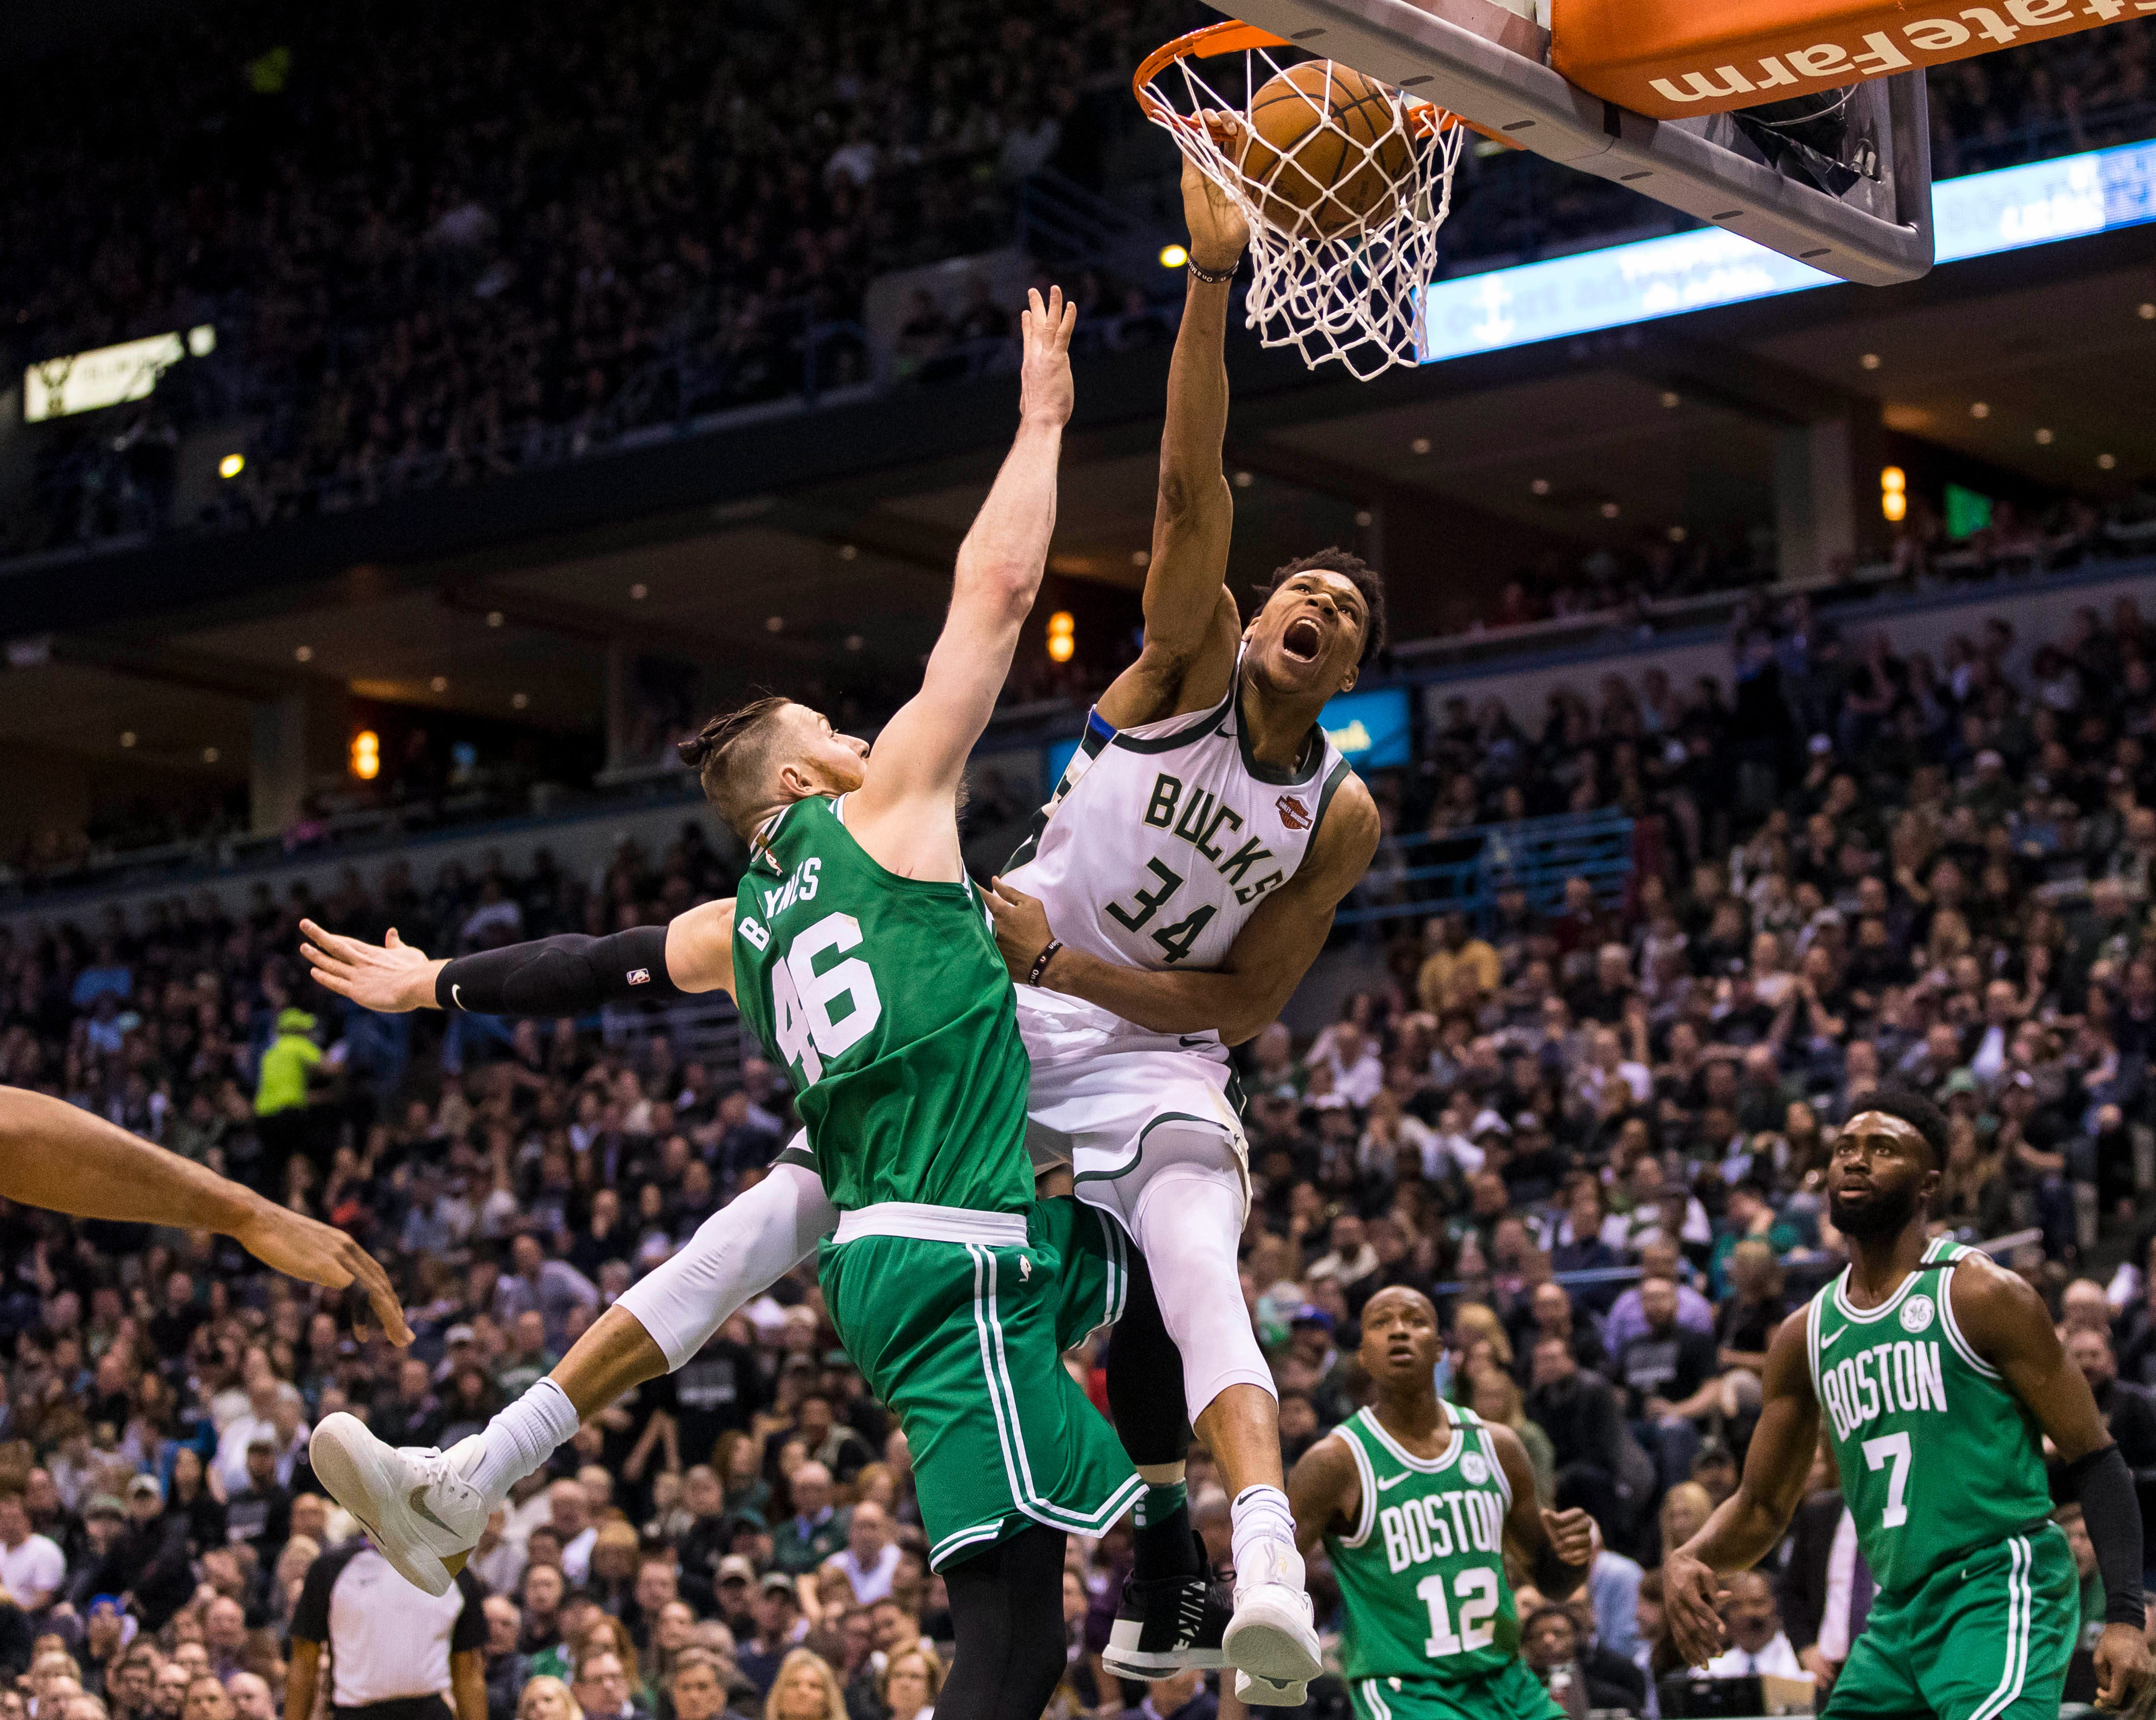 Five reasons the Bucks are brewing a rare 7-2 seed upset over the Celtics